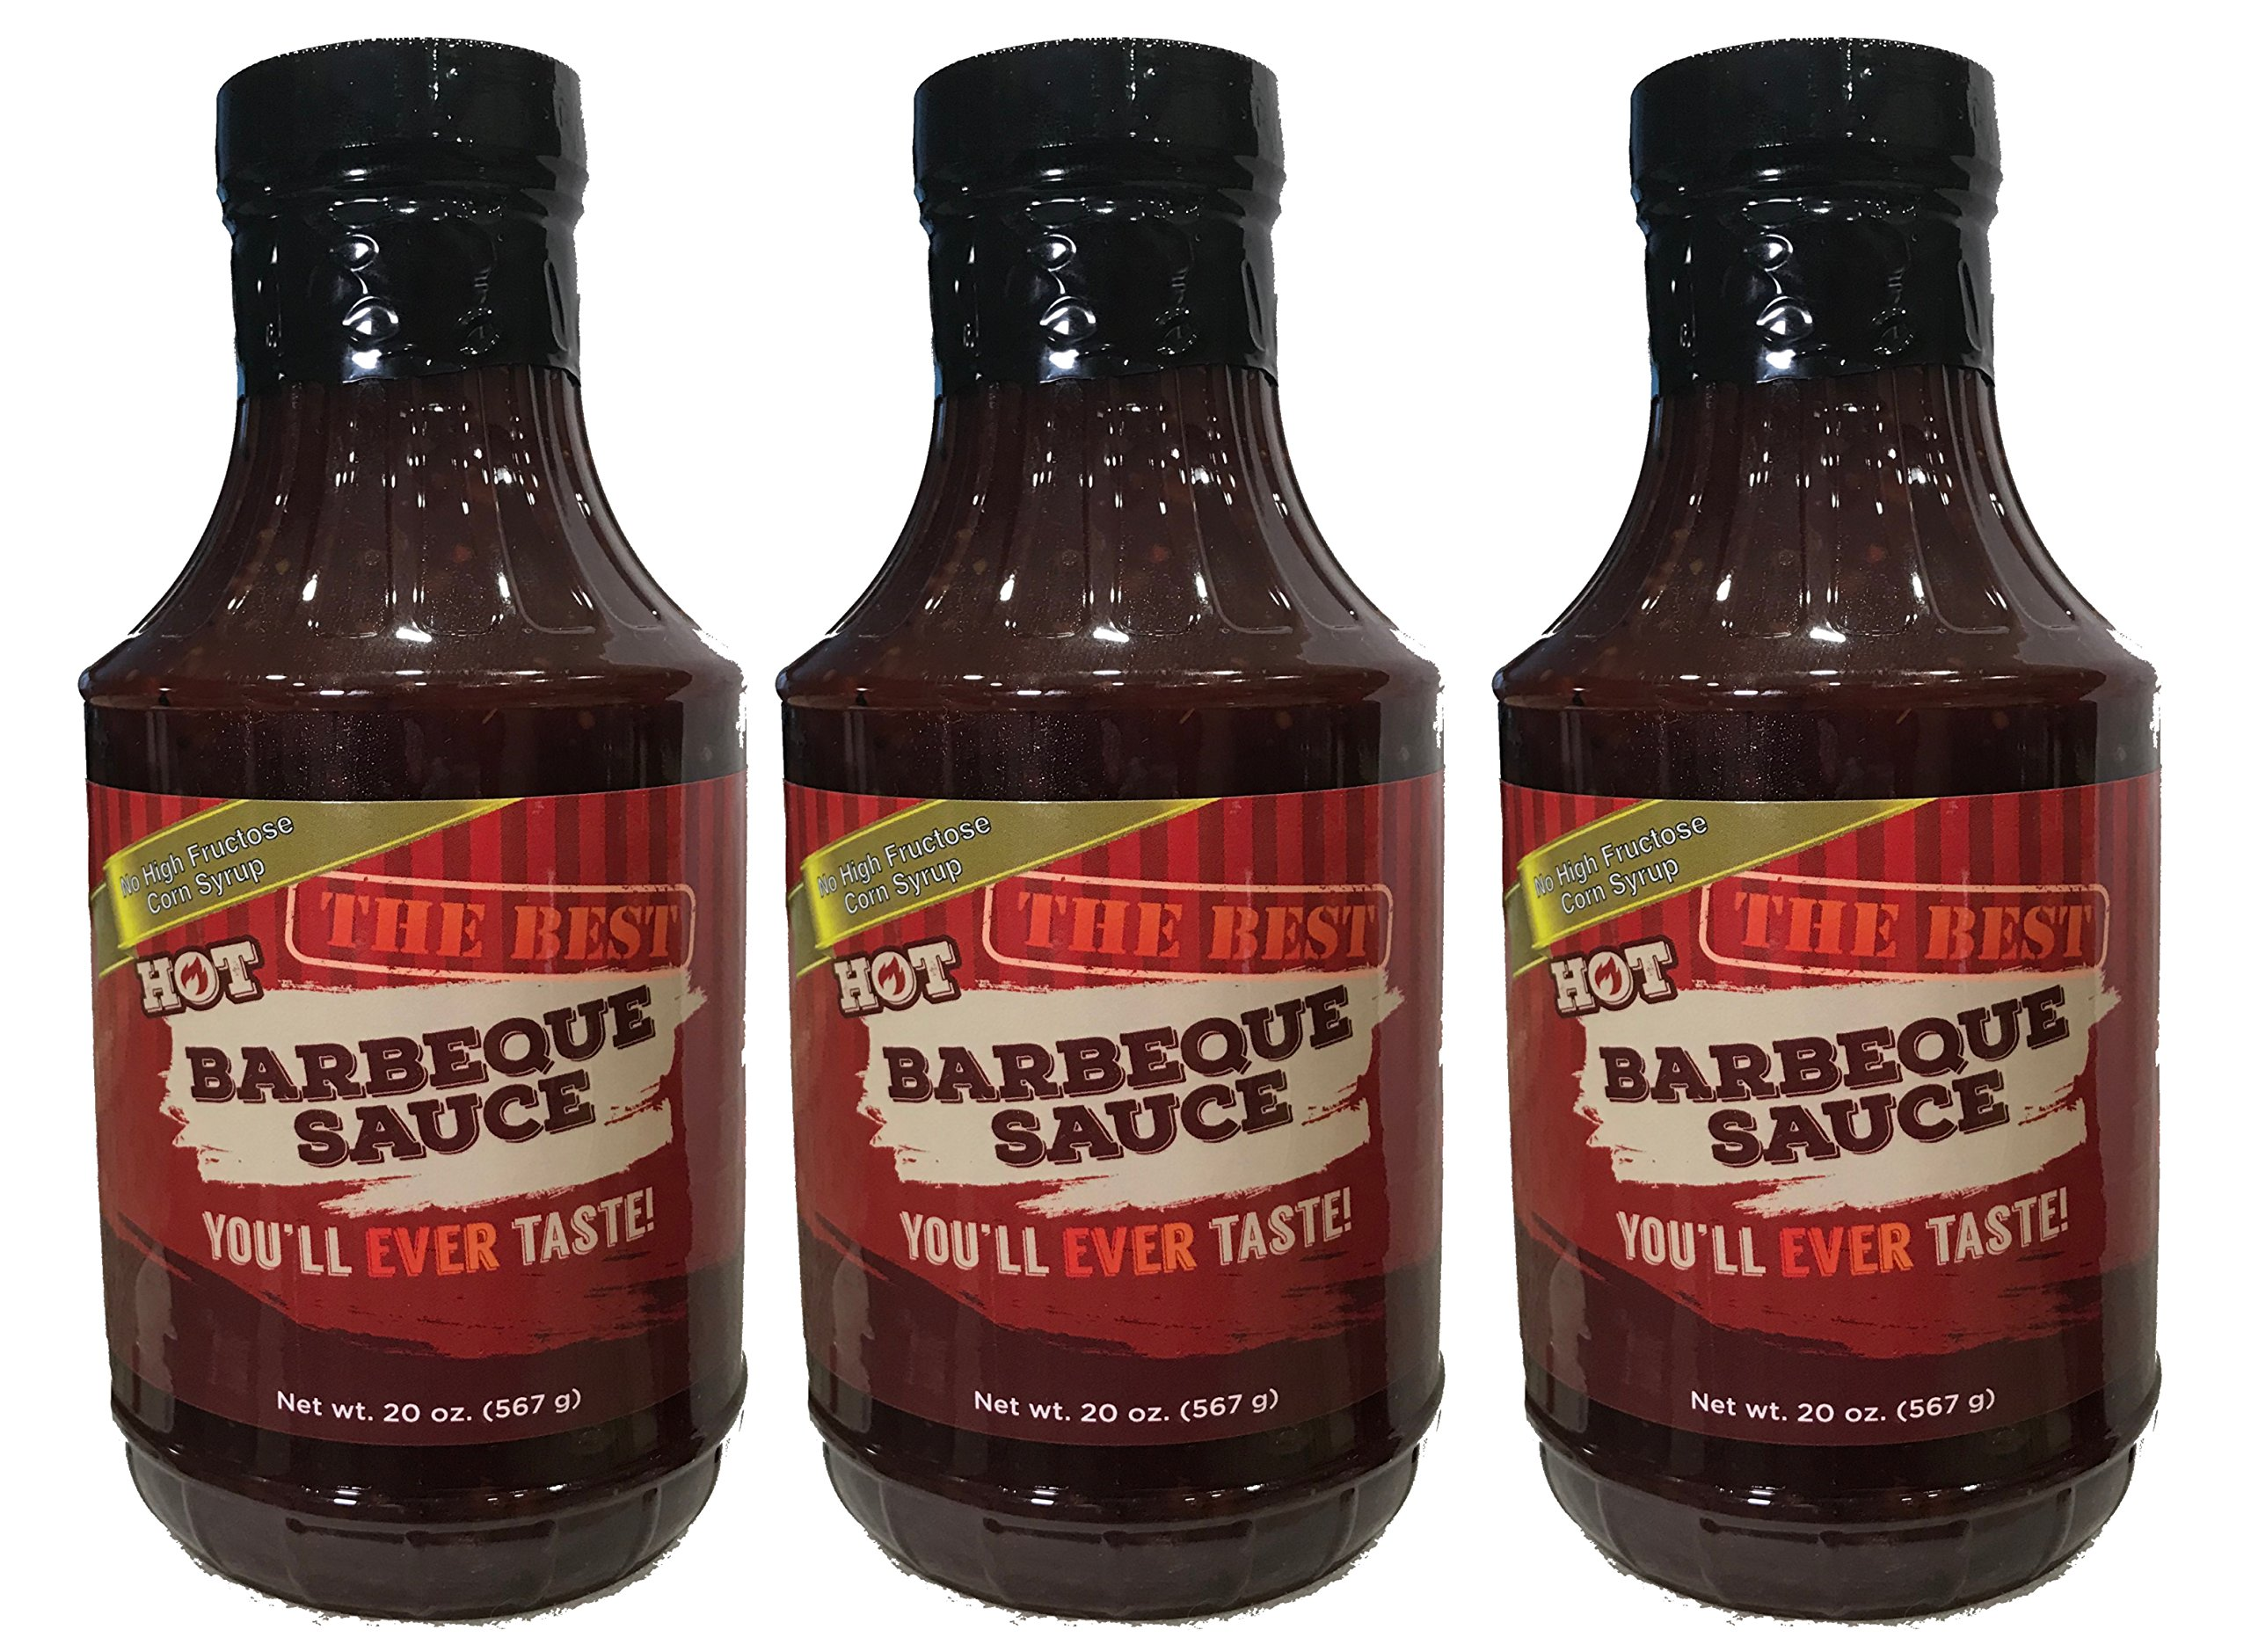 The Best Hot BBQ Sauce You'll Ever Taste (3 pack) by GiveMe Foods